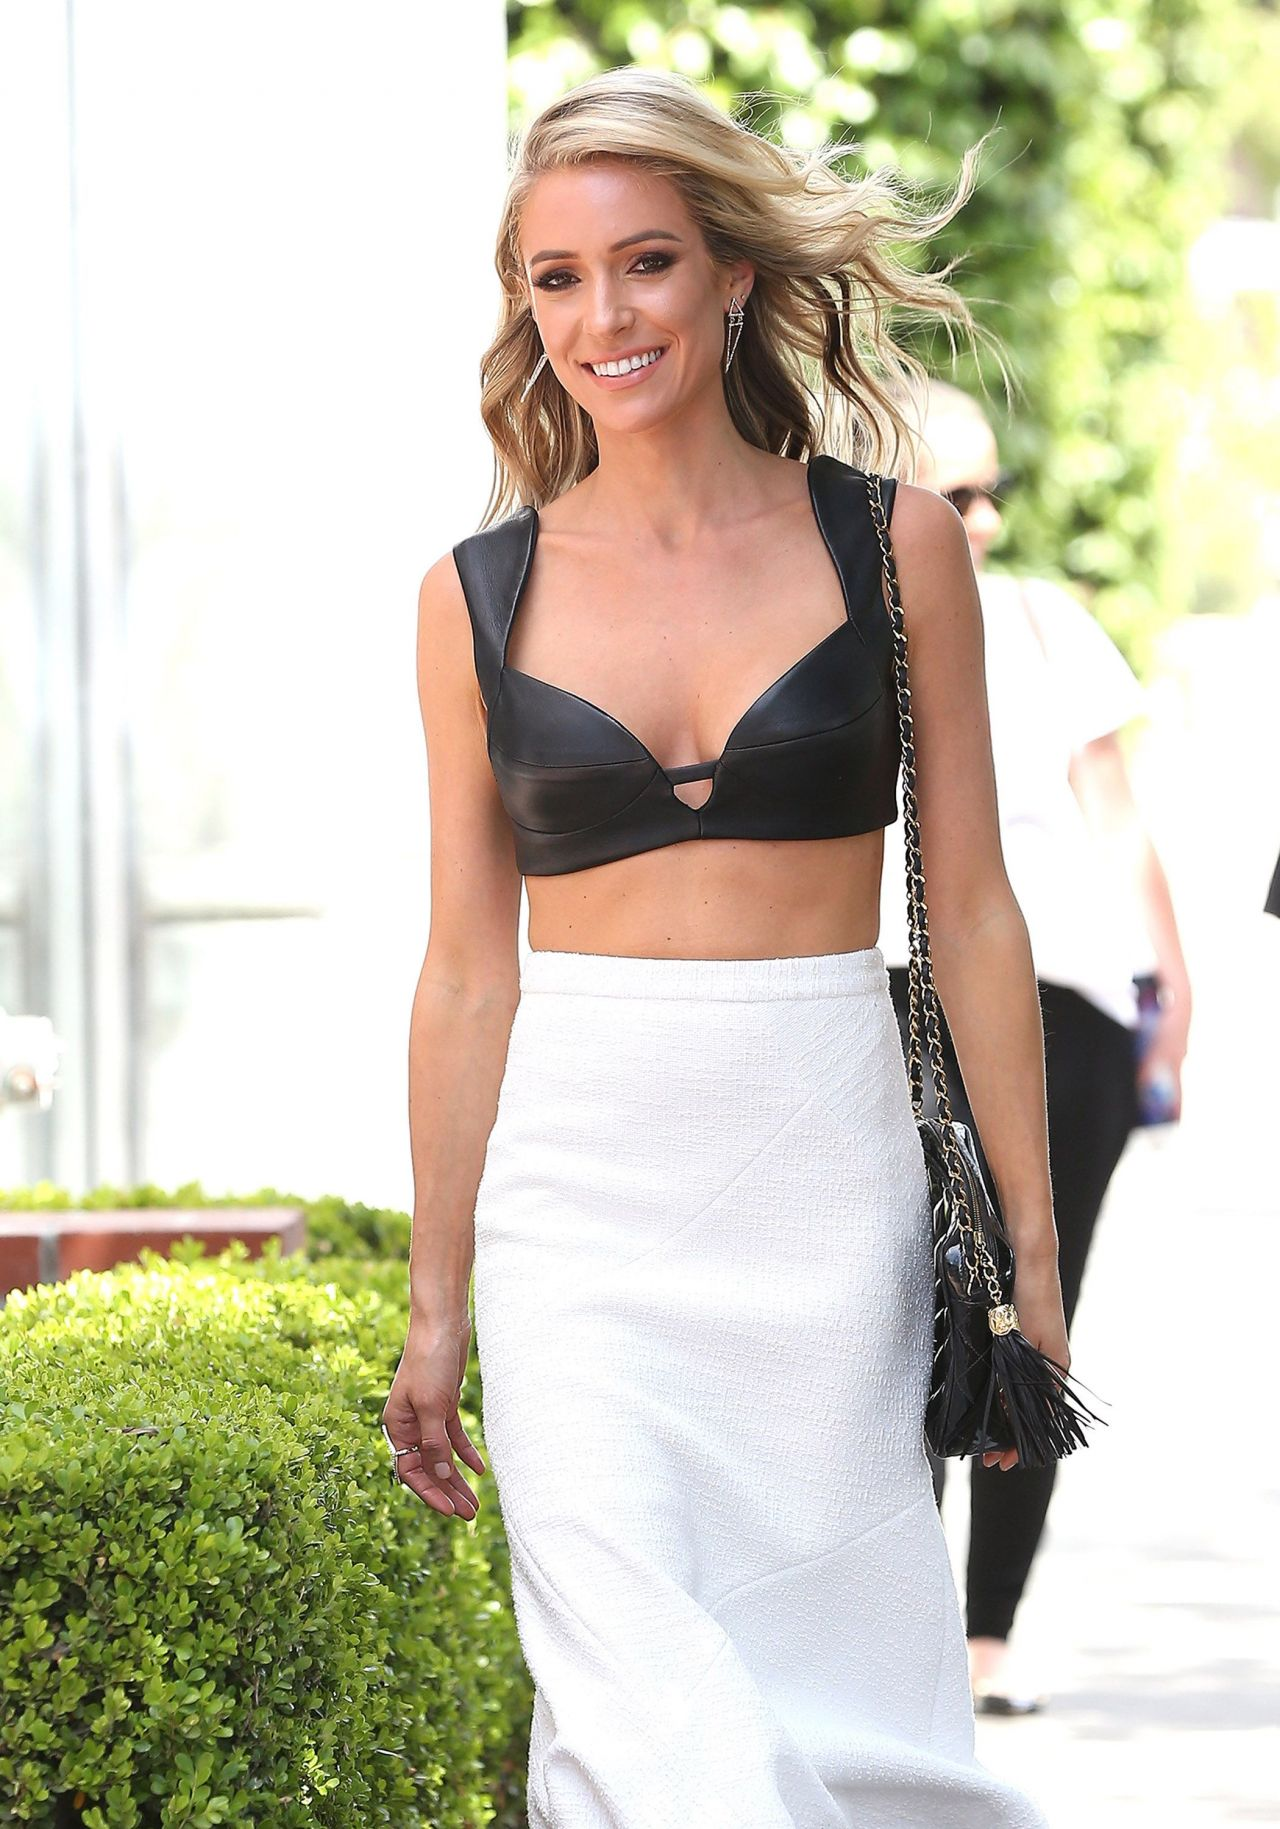 Kristin Cavallari Sexy Out in LA, Leather Bra